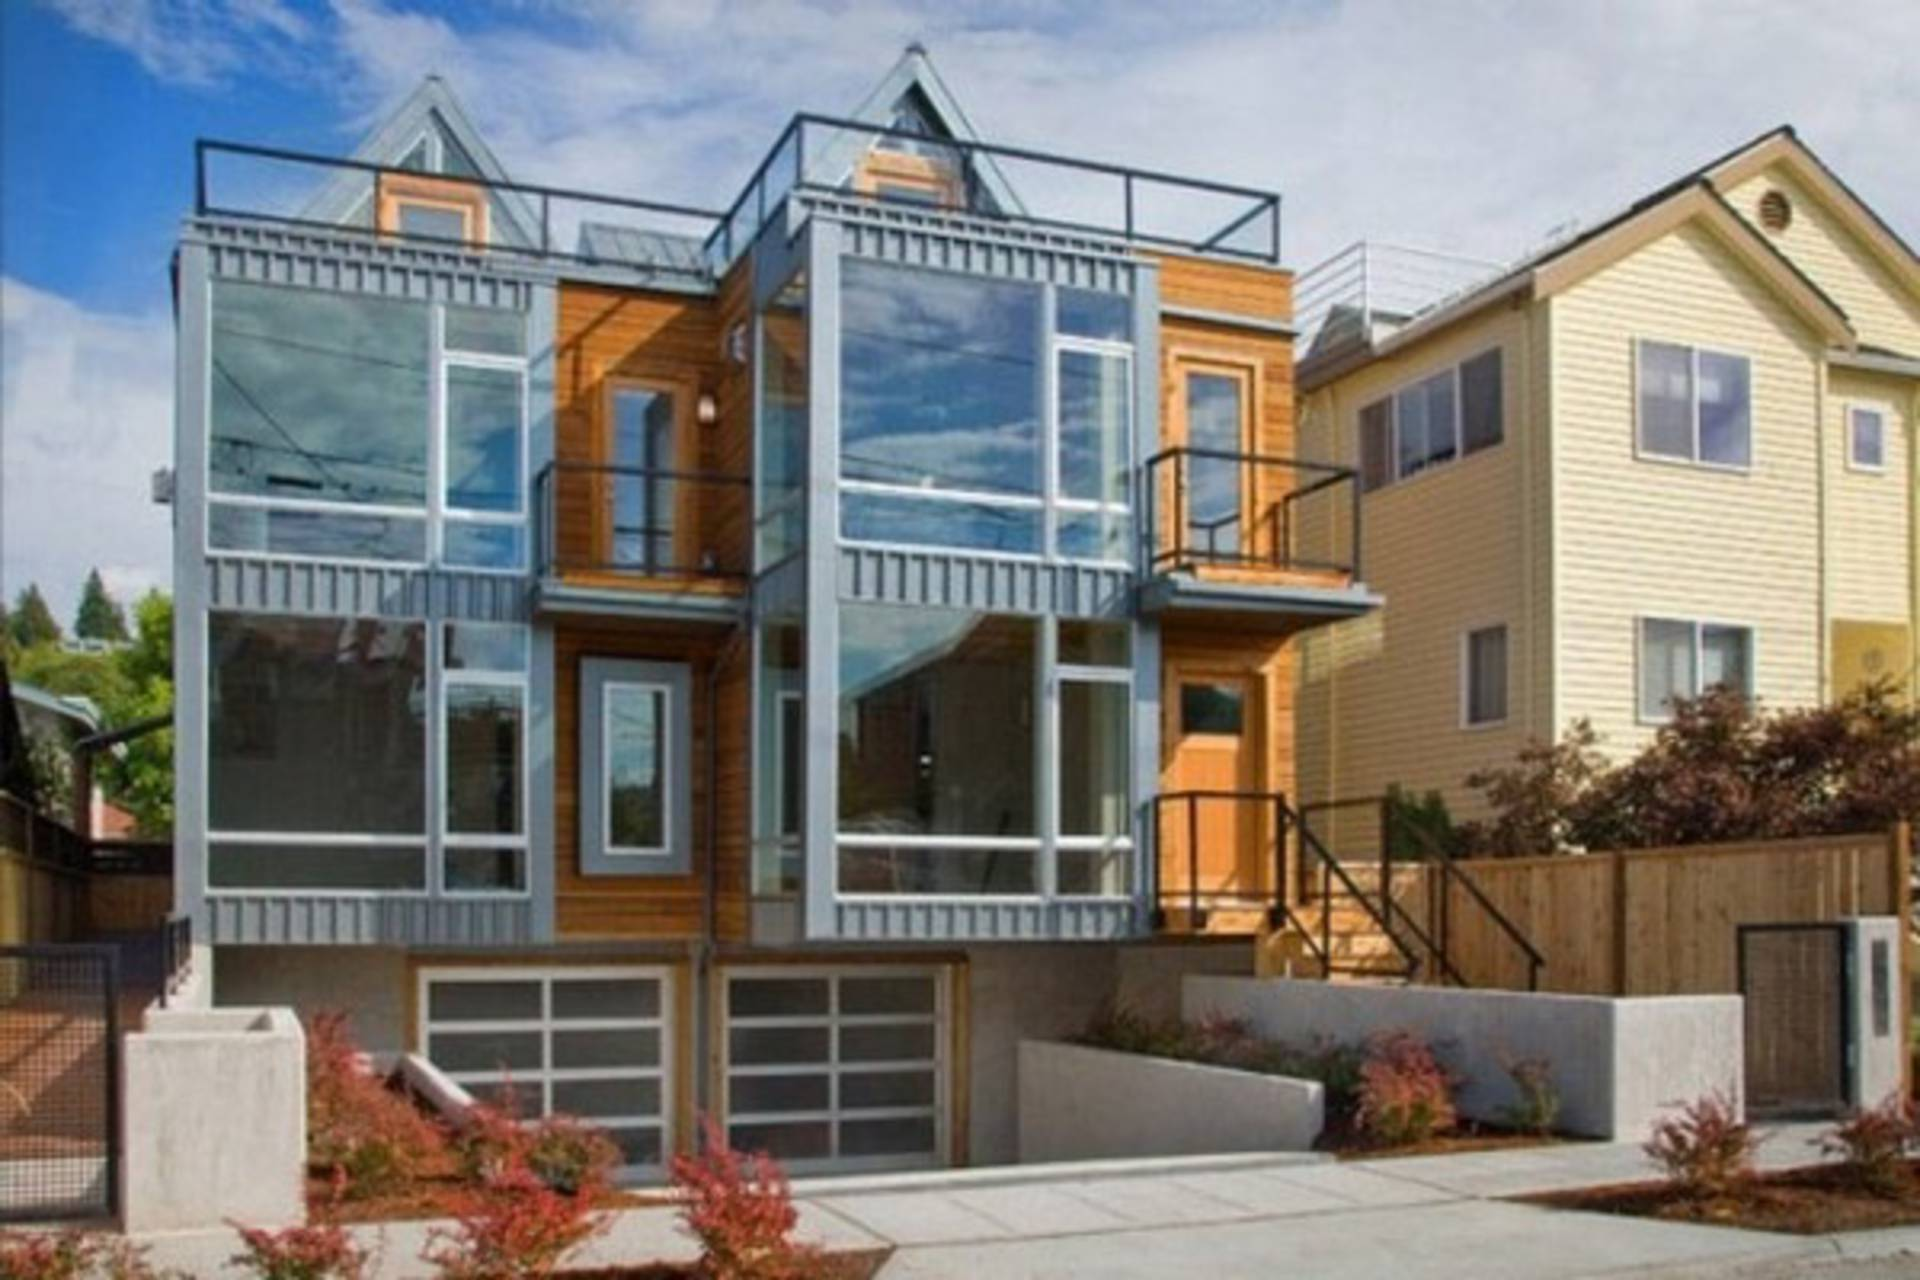 High Quality Alki Townhomes In Seattle By Johnston Architects ... Design Ideas